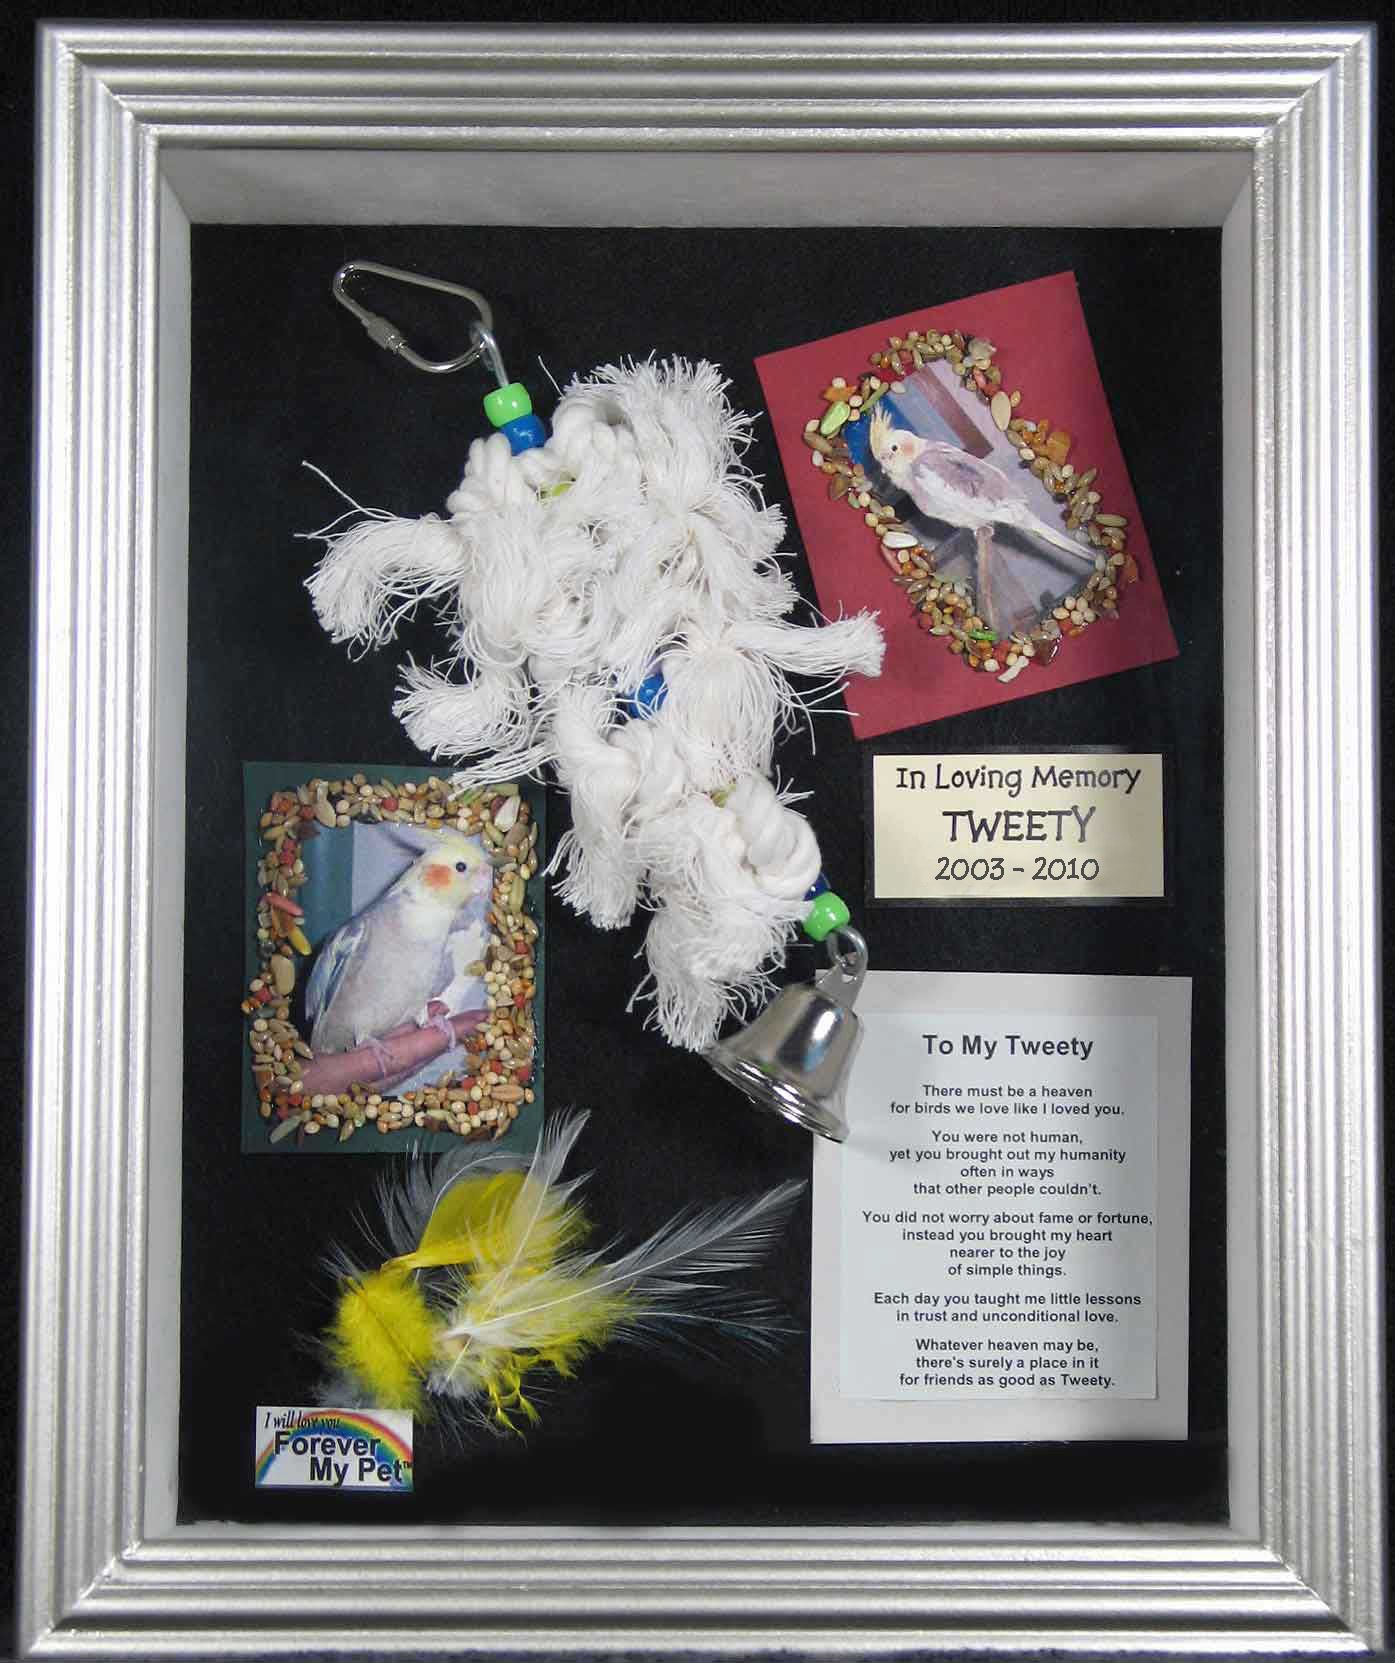 pet frames in loving memory - Google Search | Framing Stuff For Our ...